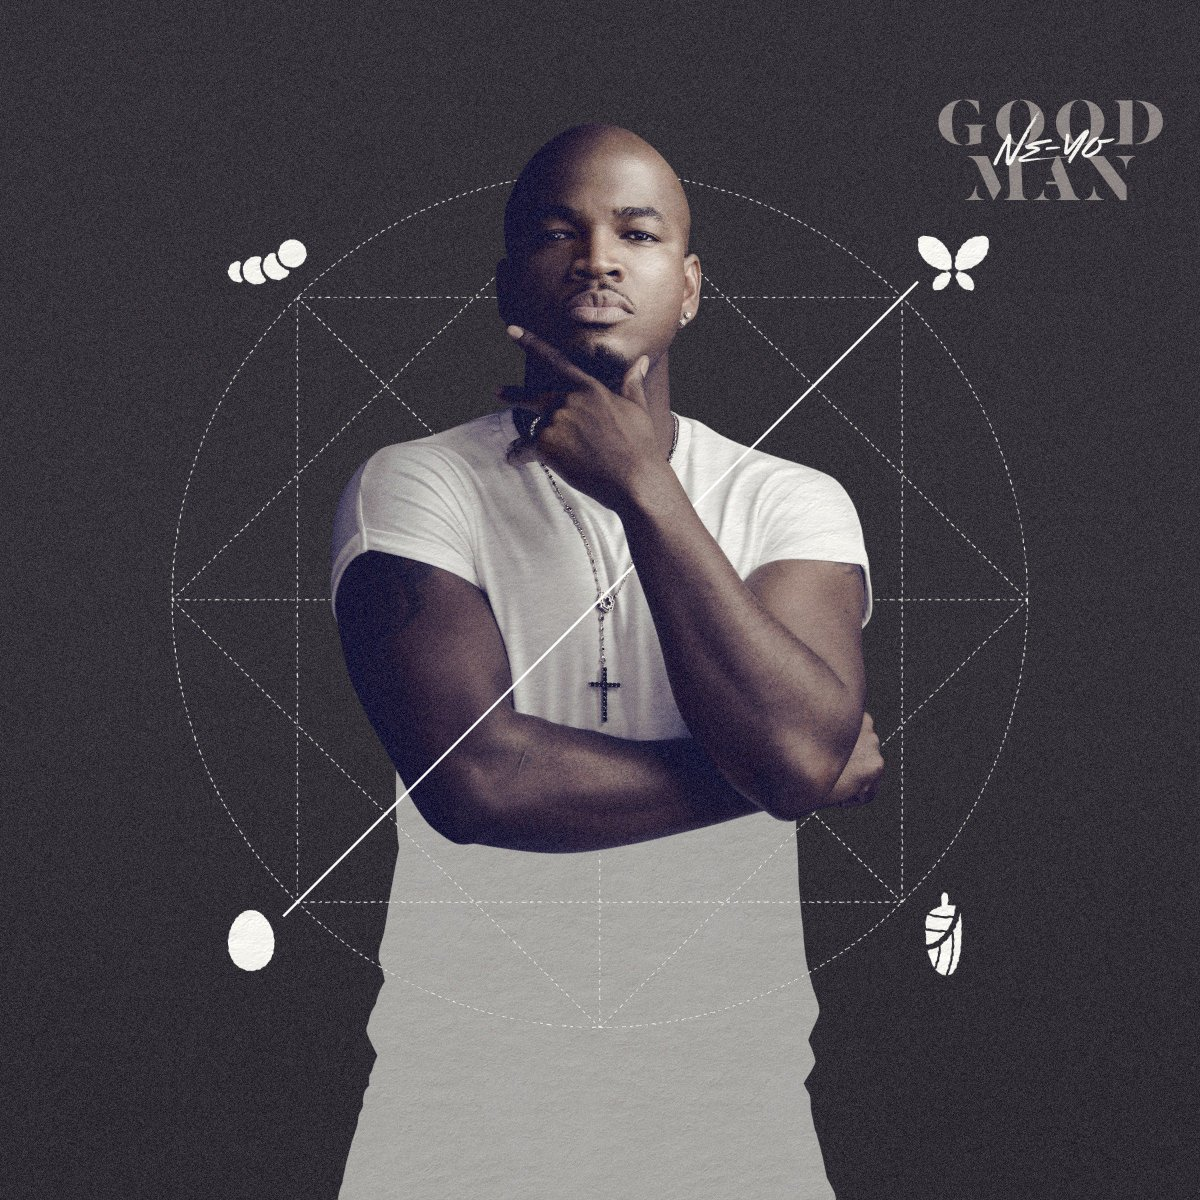 Pre-save @NeYoCompound&#39;s upcoming album #GoodMan now, you won&#39;t regret it   https:// NE-YO.lnk.to/GoodManAlbumTw  &nbsp;  <br>http://pic.twitter.com/fqtwzCppGY